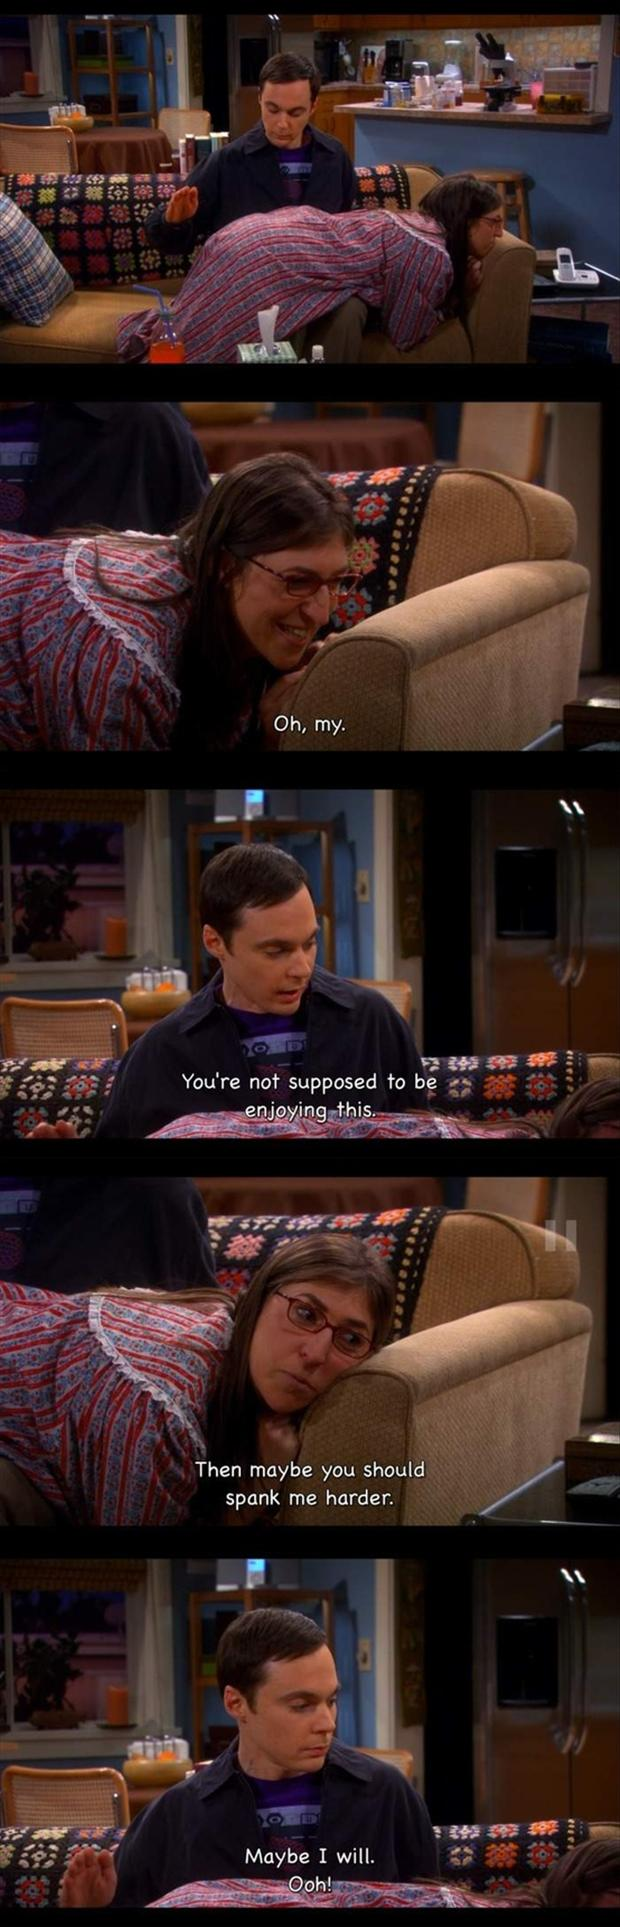 sheldon cooper spanking amy ferral fowler, funny big bang theory scene